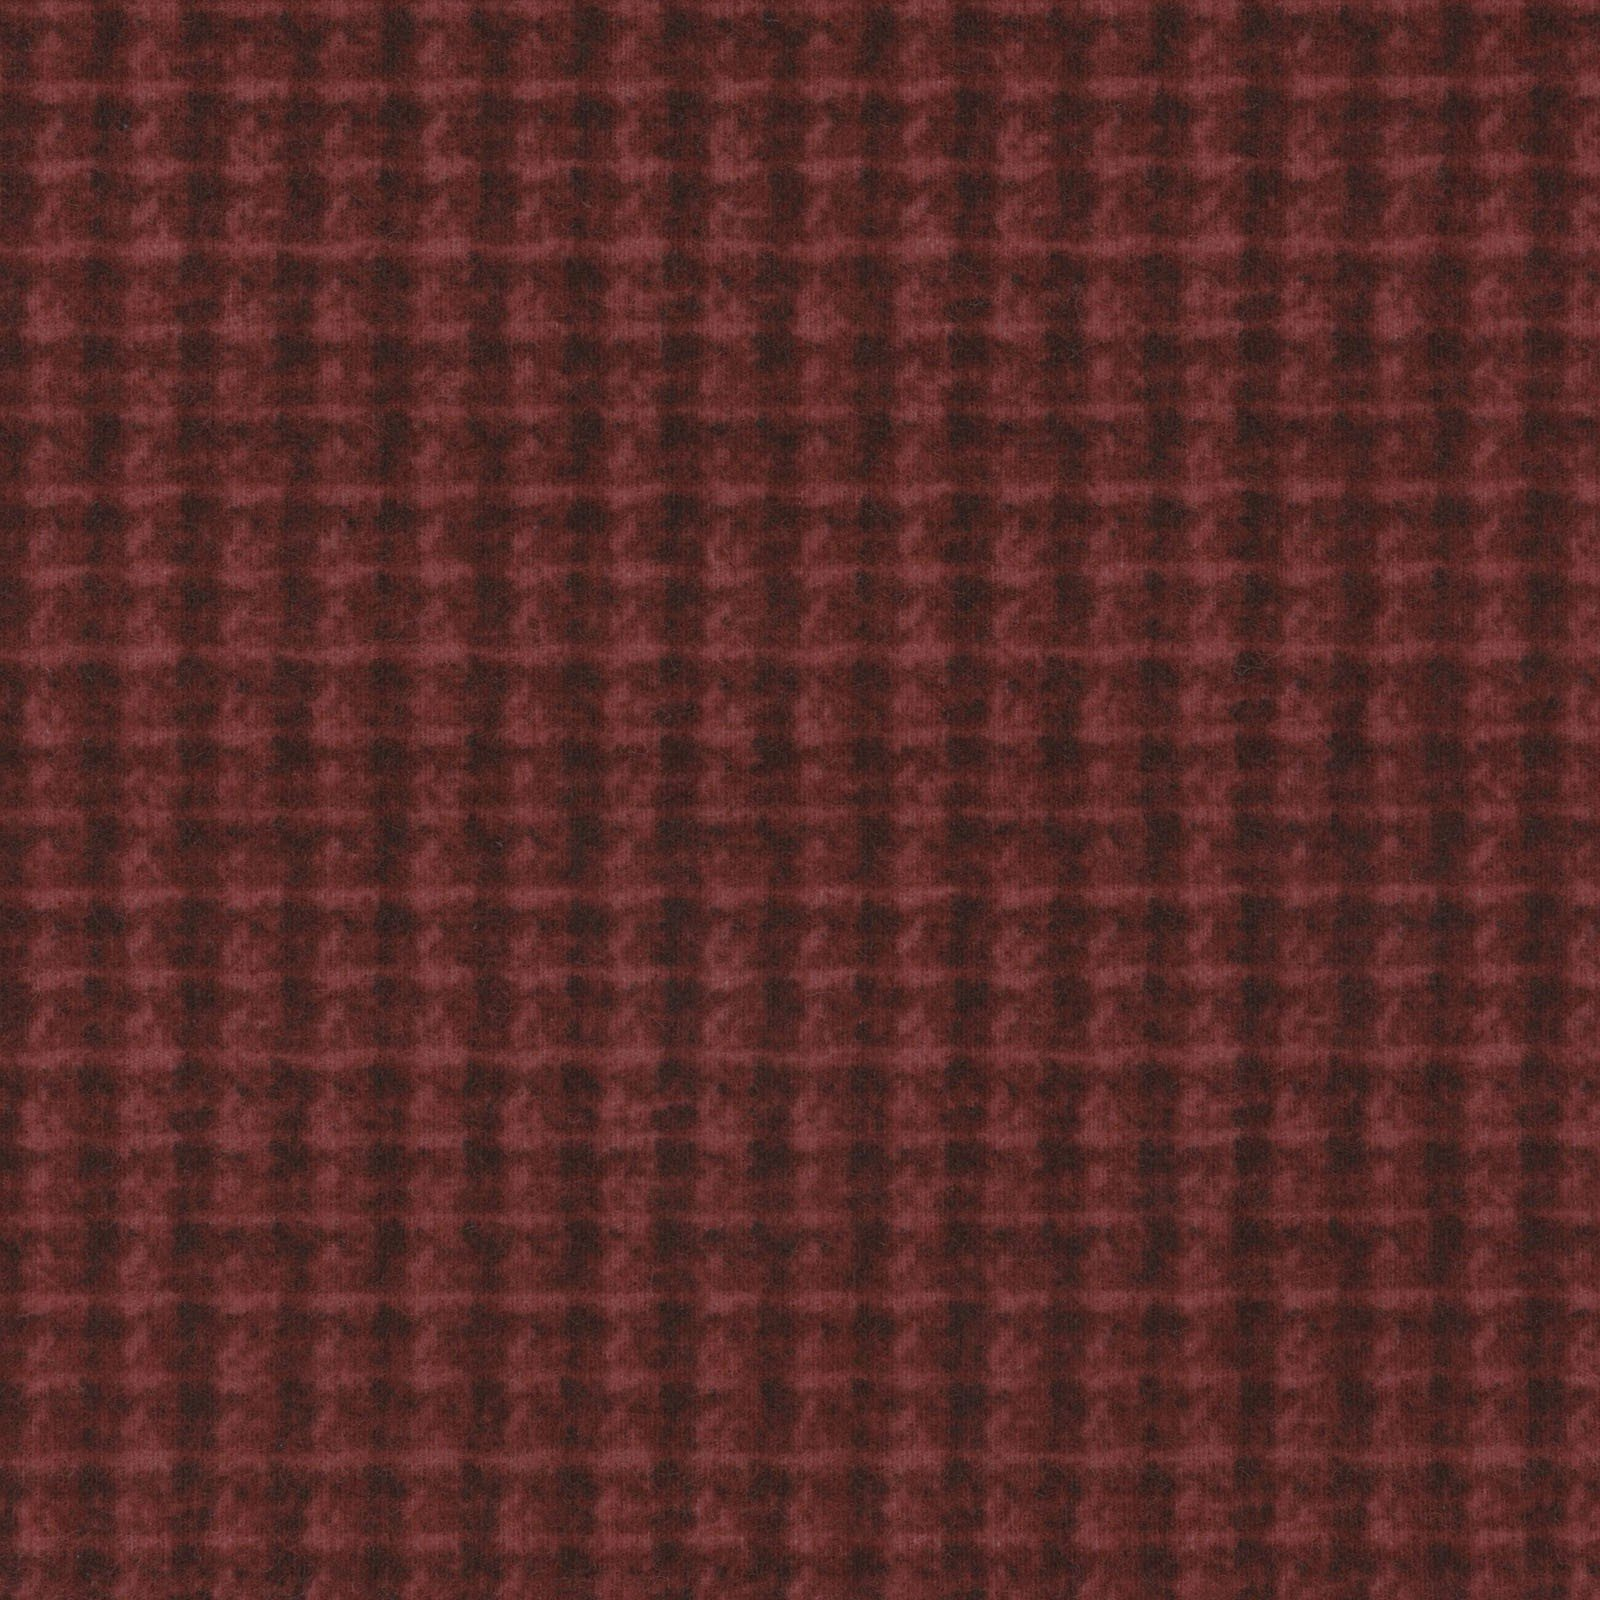 Woolies Flannel Double Weave Red (MASF18504-R)